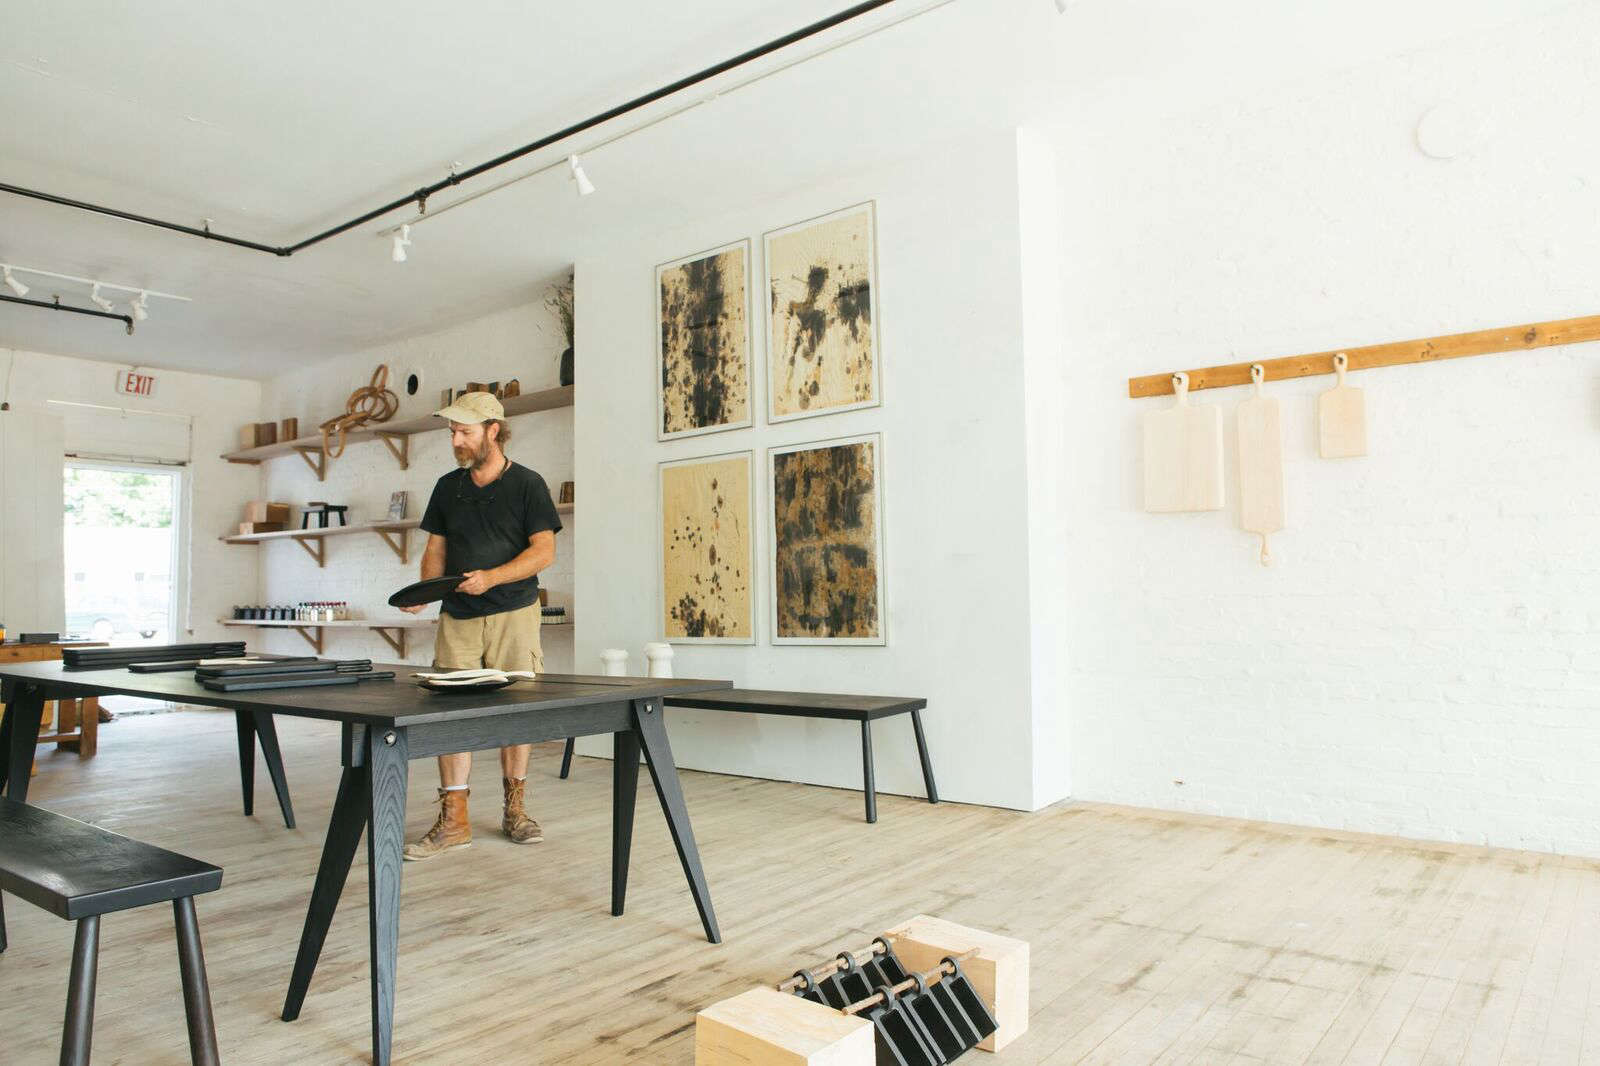 A New Store From Blackcreek Mercantile U0026 Trading Co. In Kingston, New York